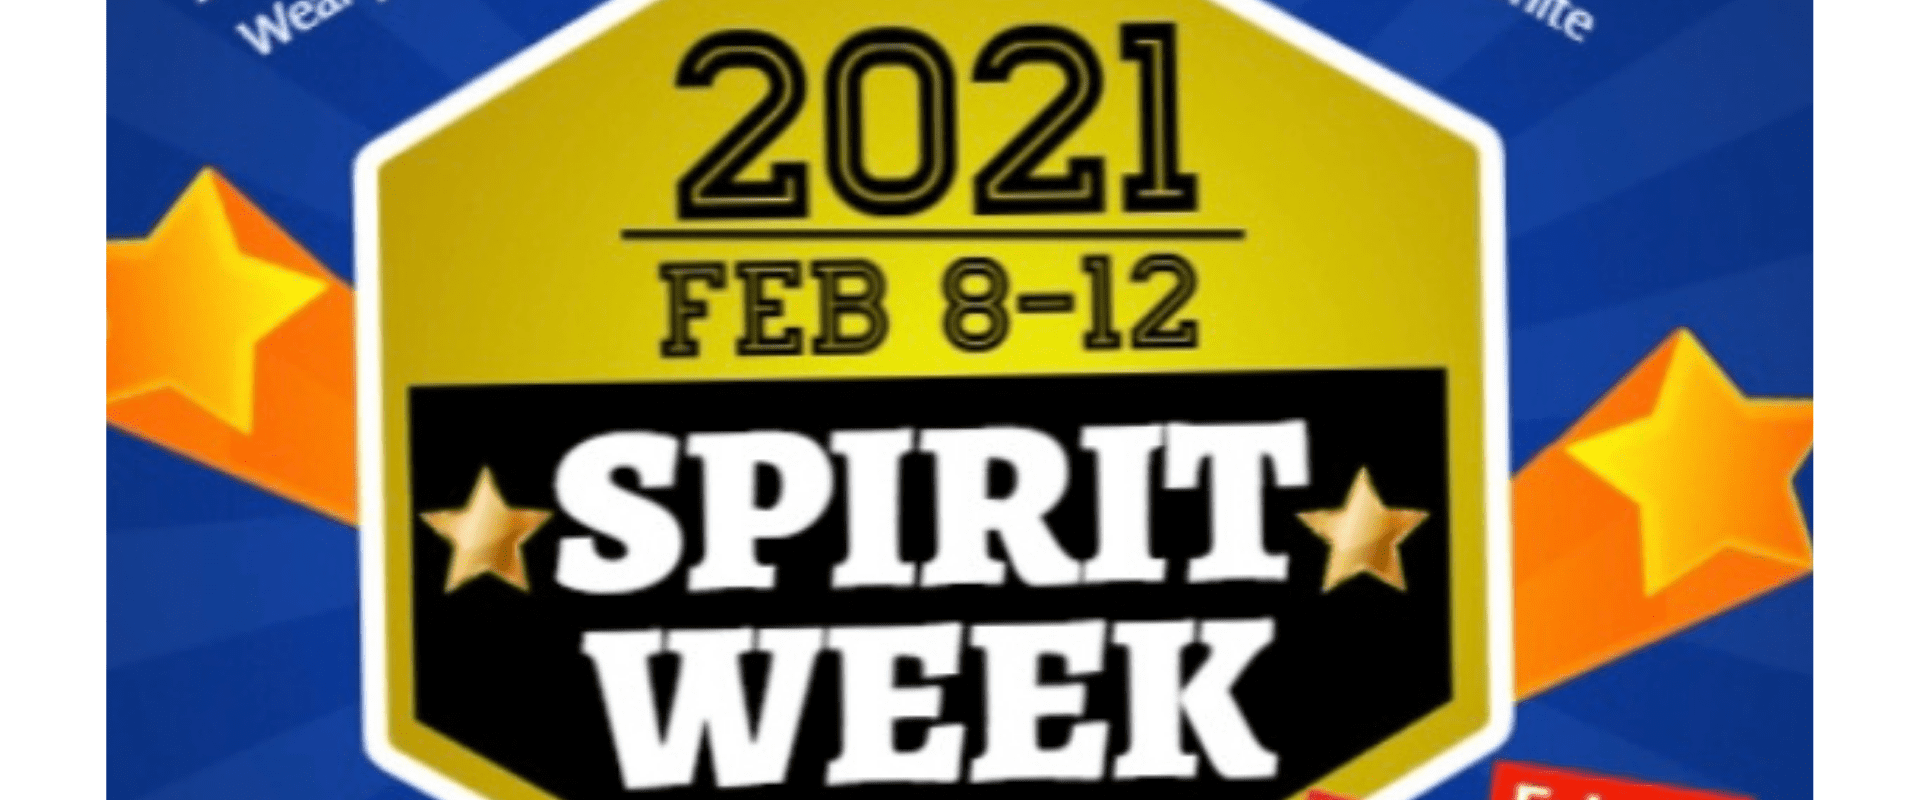 Middle School February 2021 Spirit Week